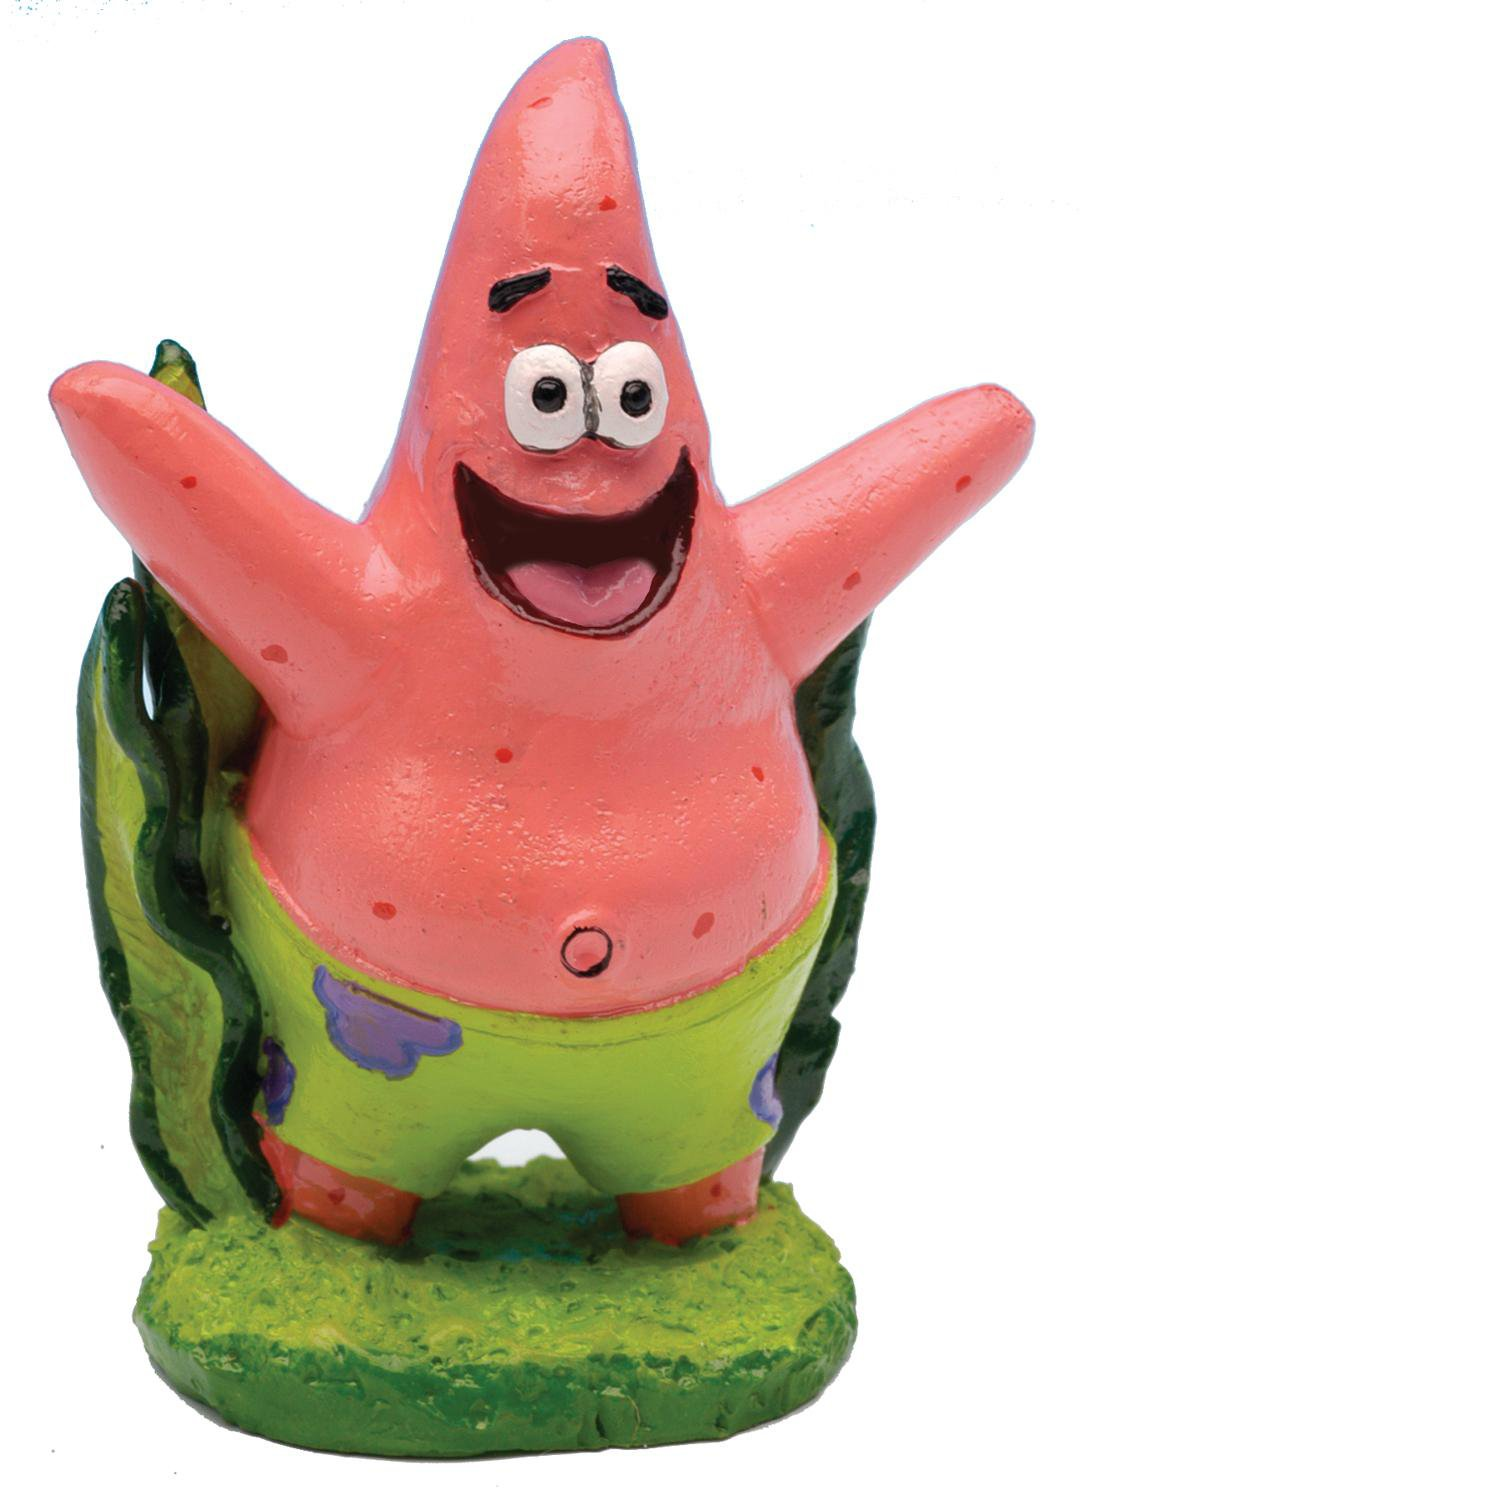 Penn Plax Spongebob Squarepants Patrick Aquatic Ornament